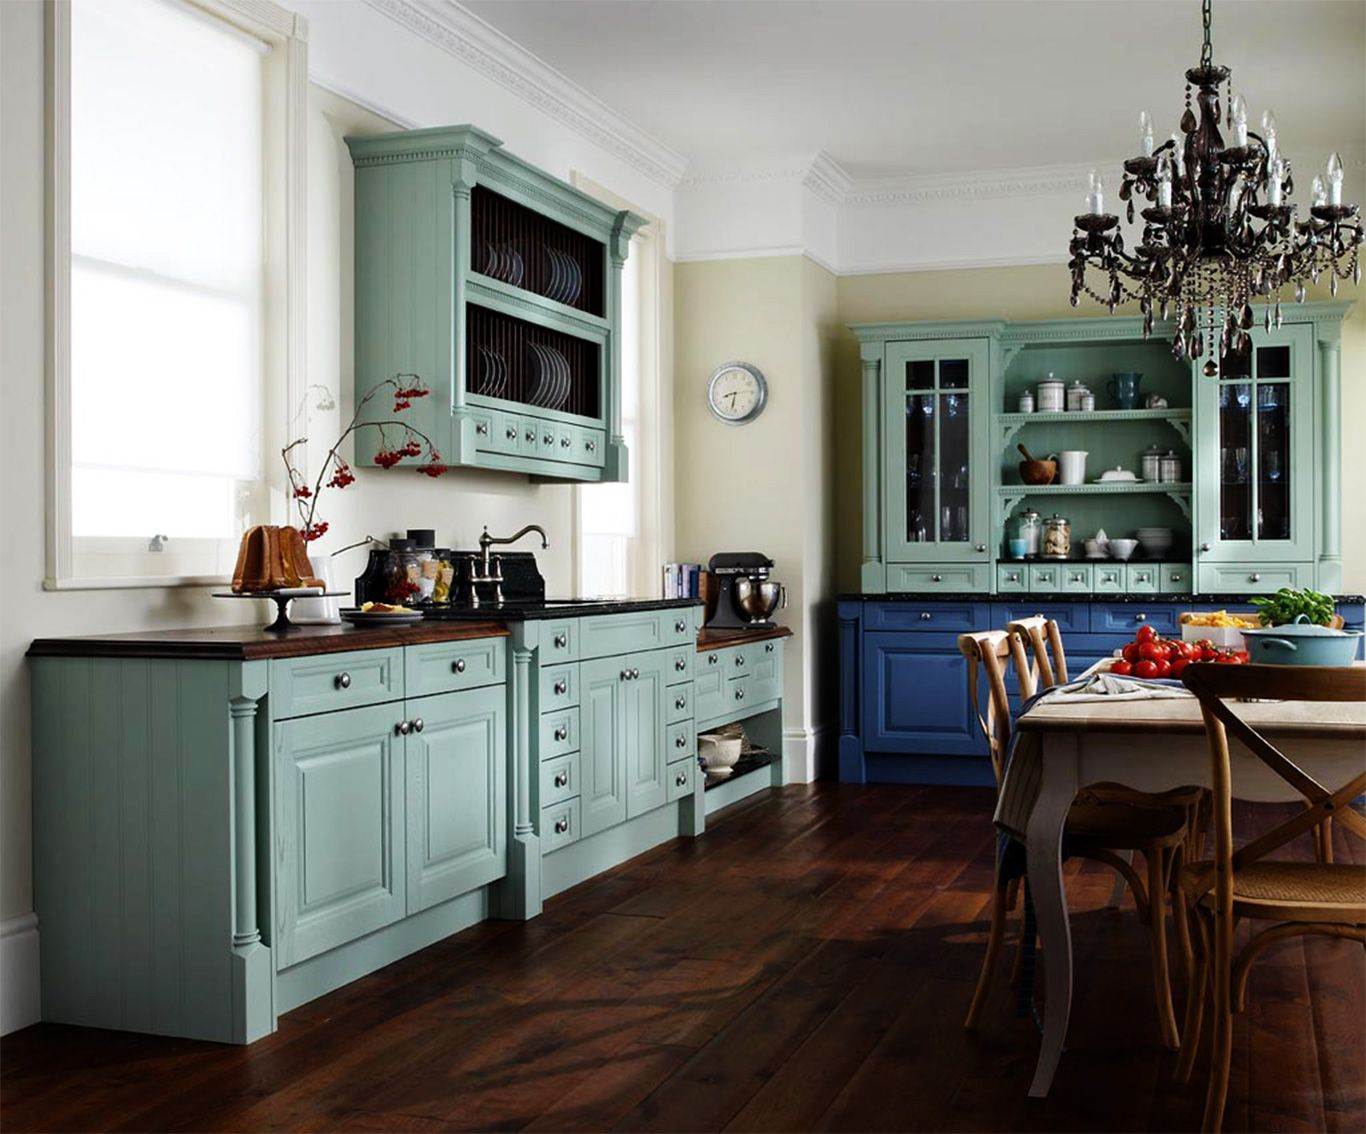 20 Kitchen Cabinet Colors Ideas Mybktouch With Kitchen Cabinets Colors What  Color Should I Paint My